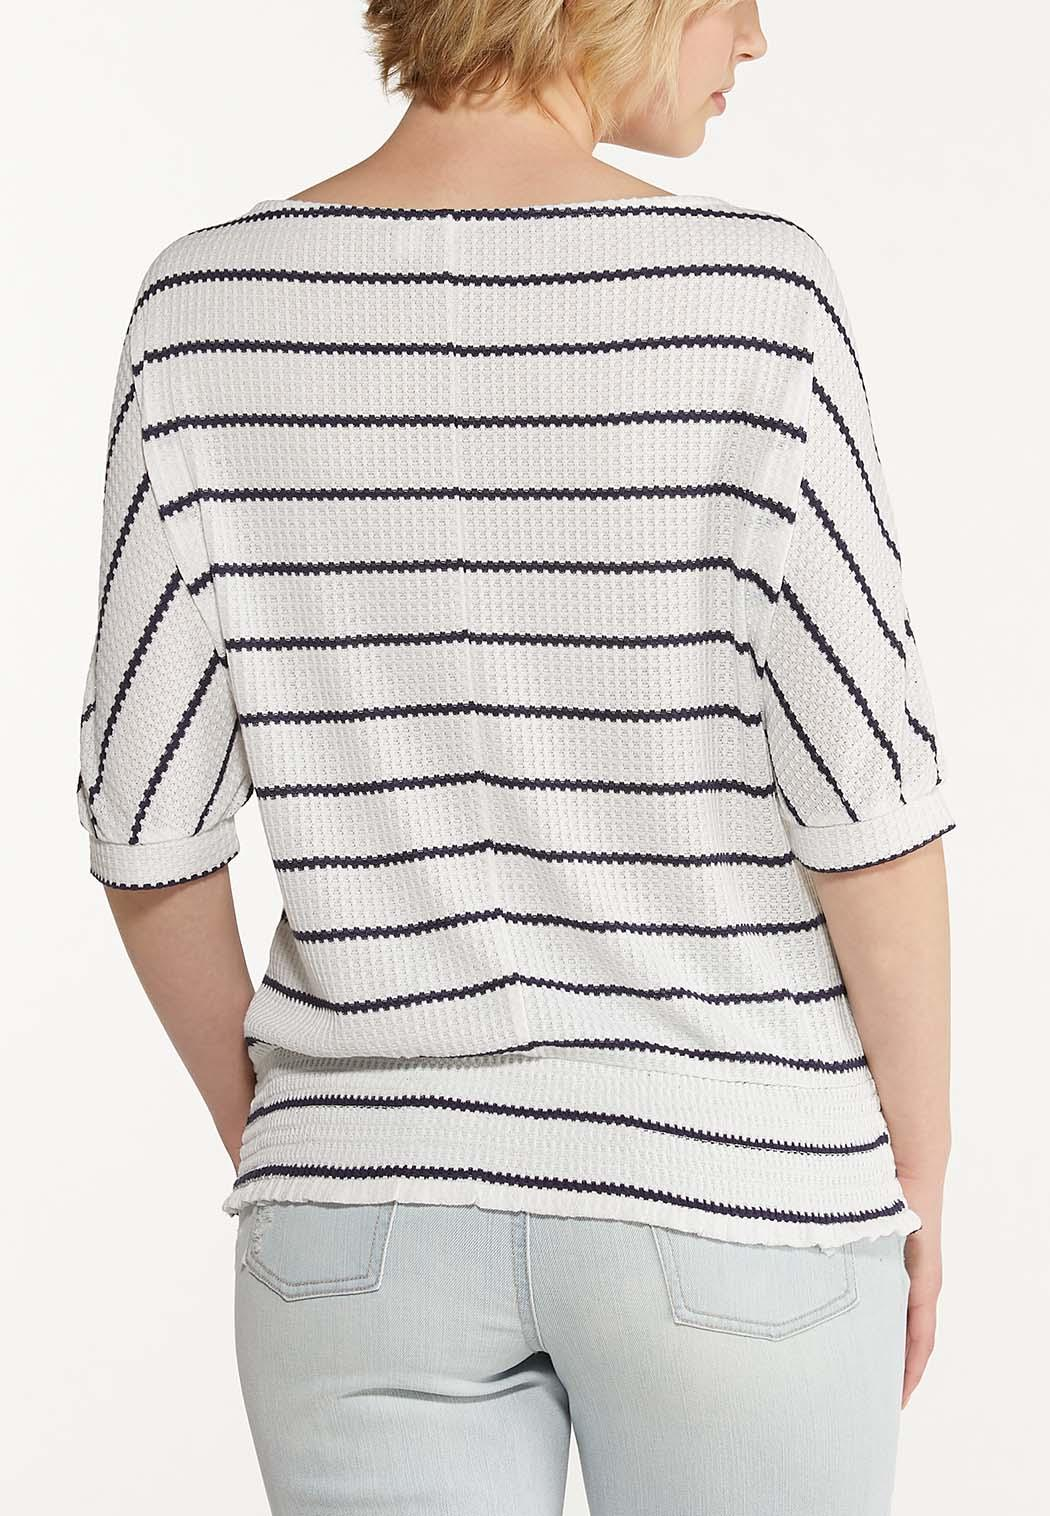 Plus Size Striped Thermal Top (Item #44597420)